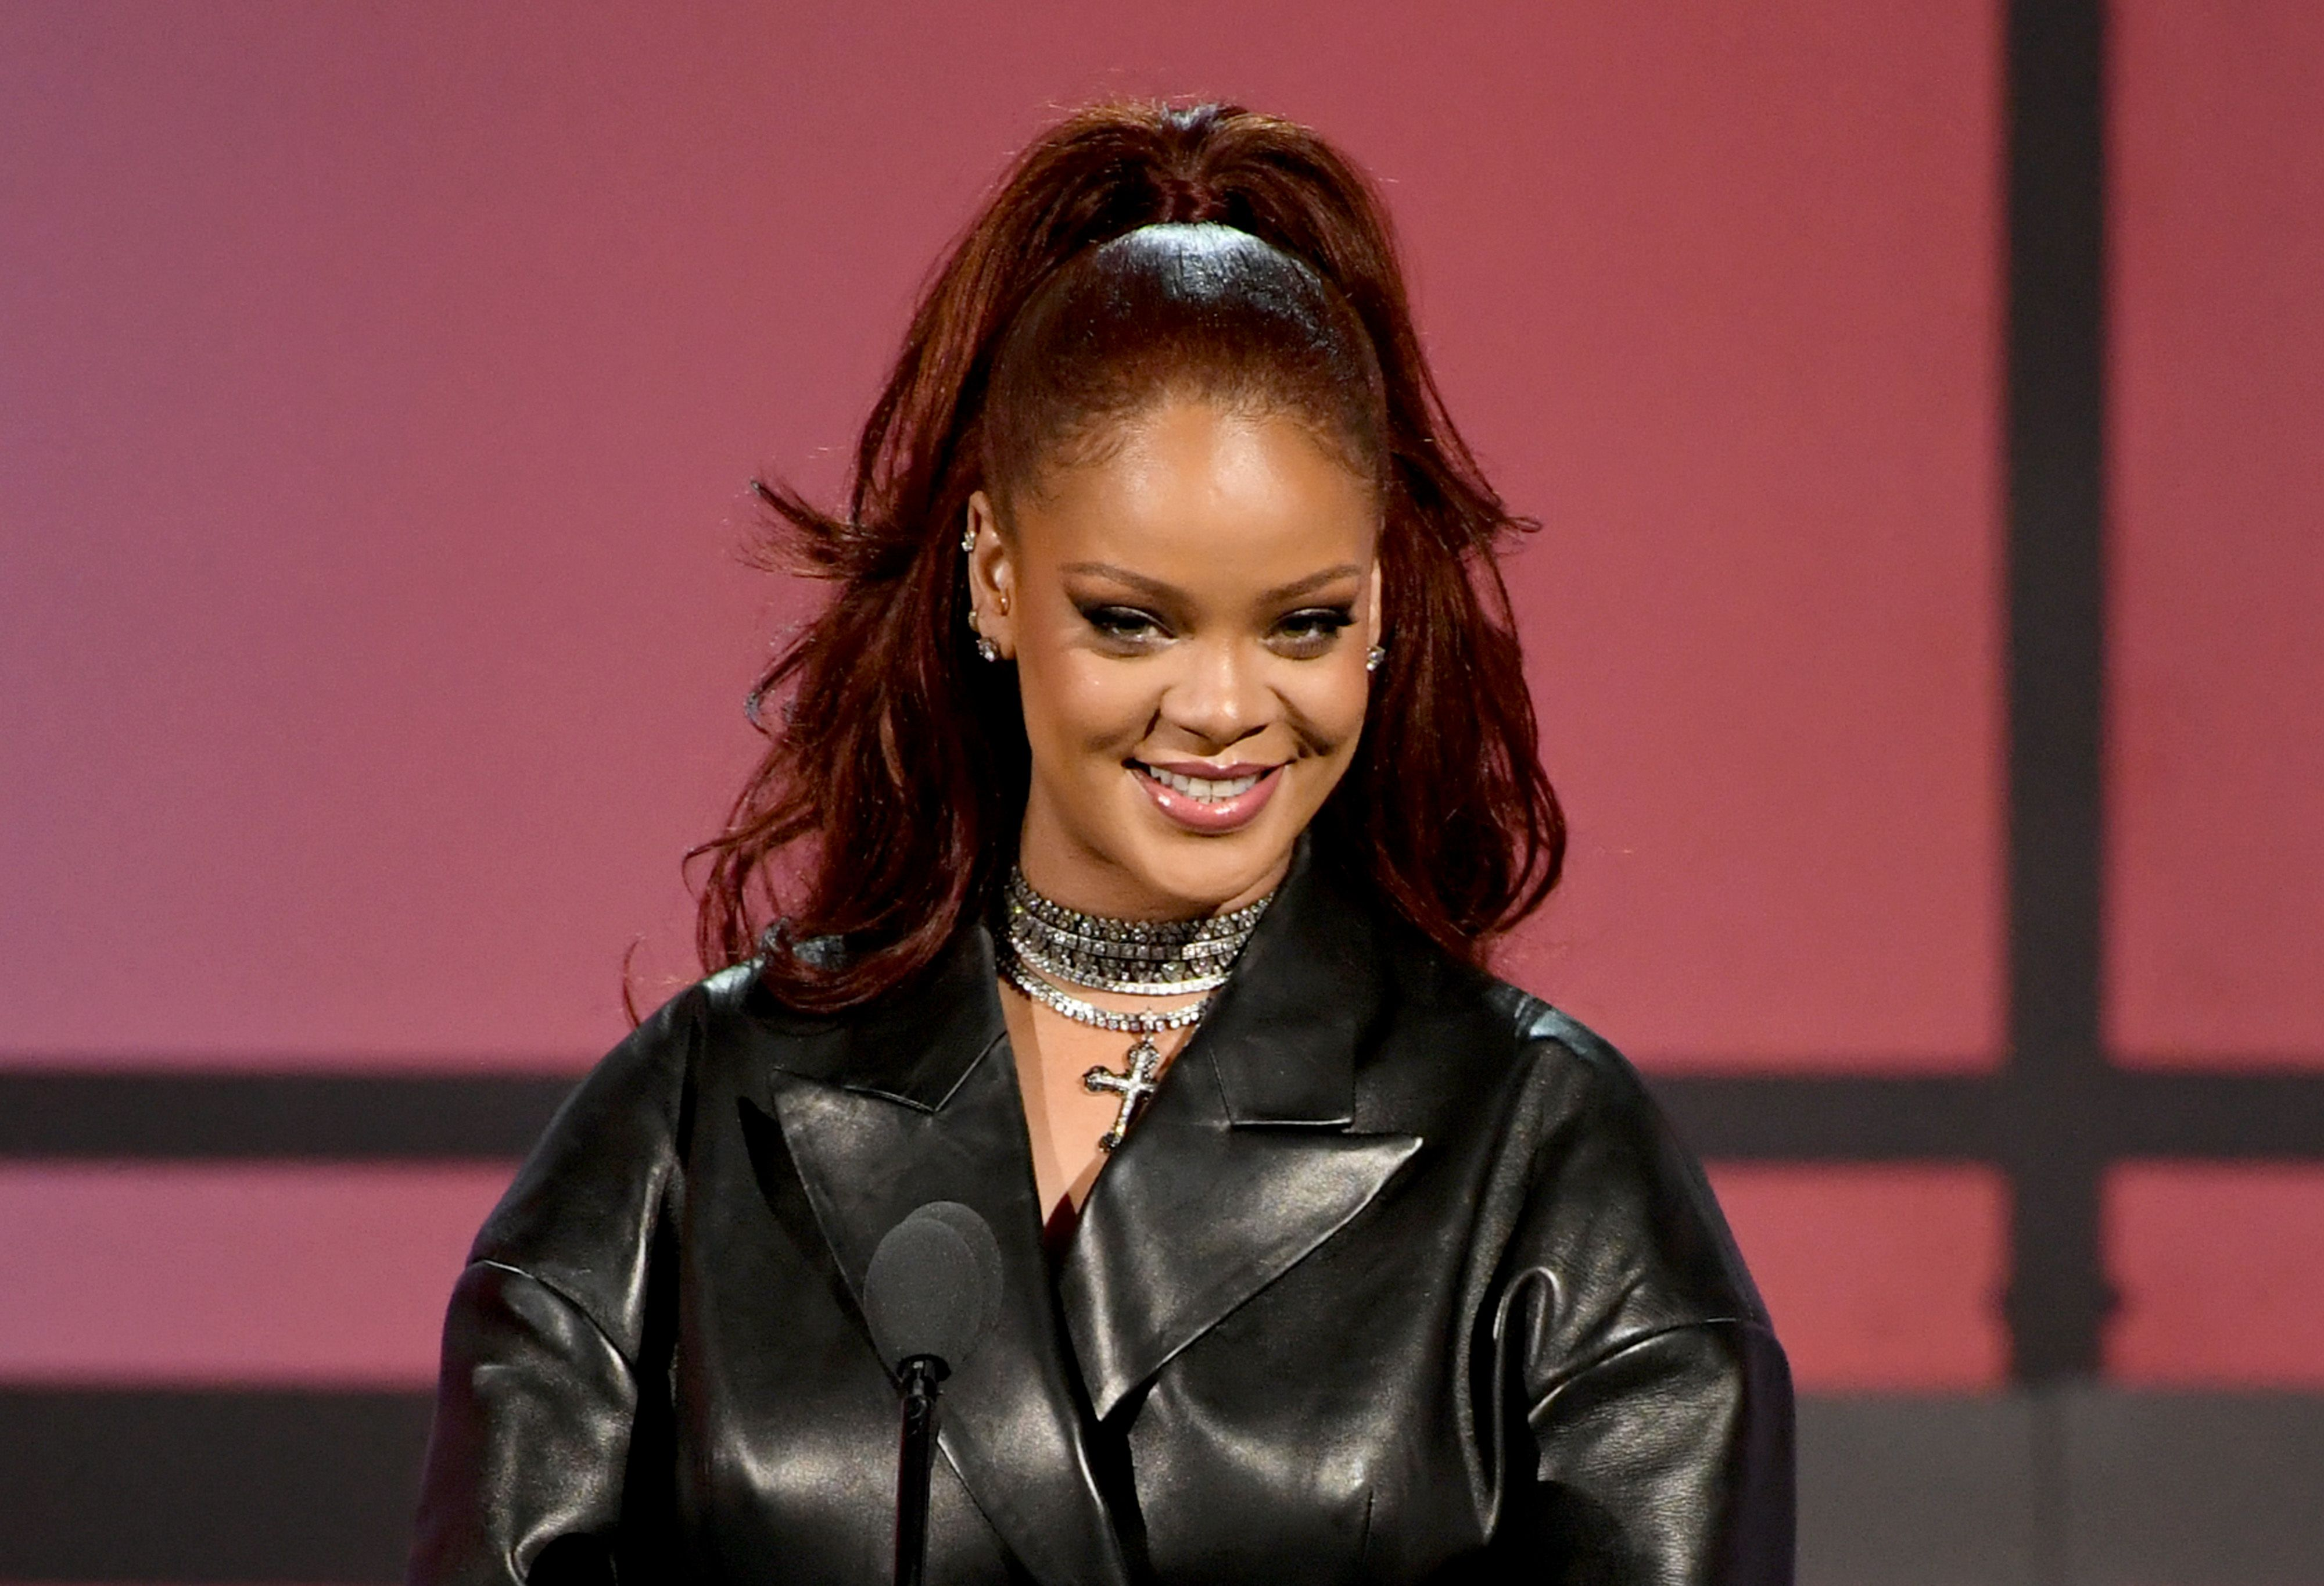 Rihanna during the 2019 BET Awards on June 23, 2019 in Los Angeles, California. | Source: Getty Images